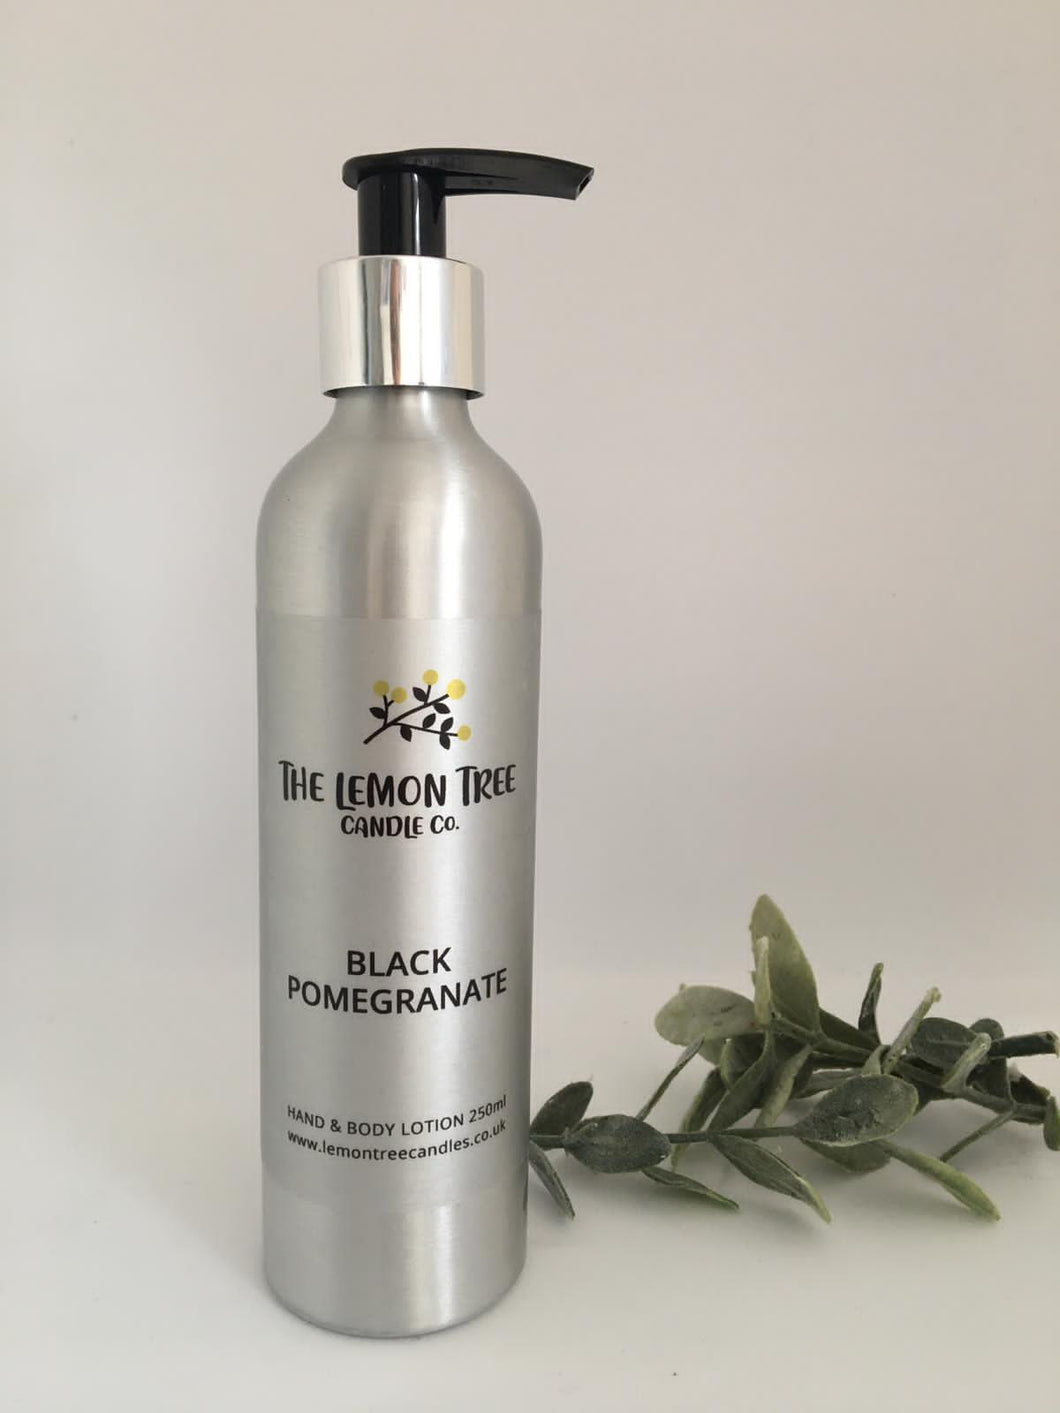 Black Pomegranate Hand & Body Lotion - The Lemon Tree Candle Company